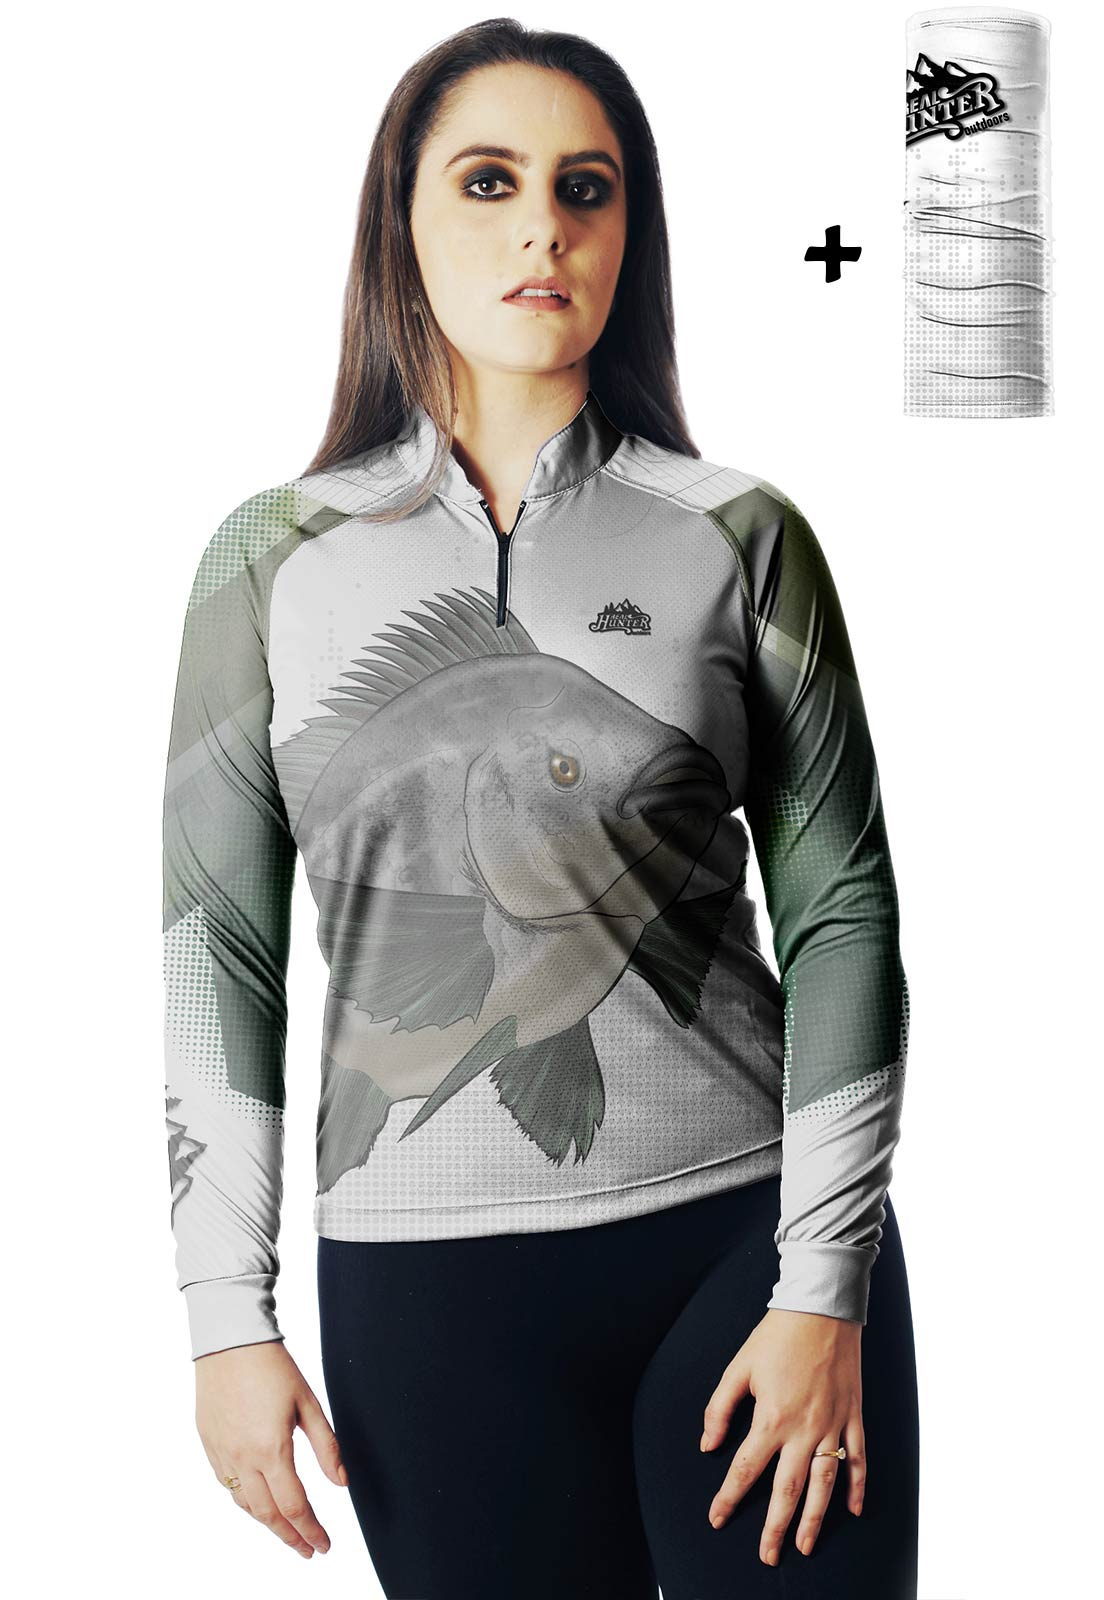 CAMISA DE PESCA FISH TILÁPIA 01 FEMININA + BANDANA GRÁTIS - REAL HUNTER OUTDOORS